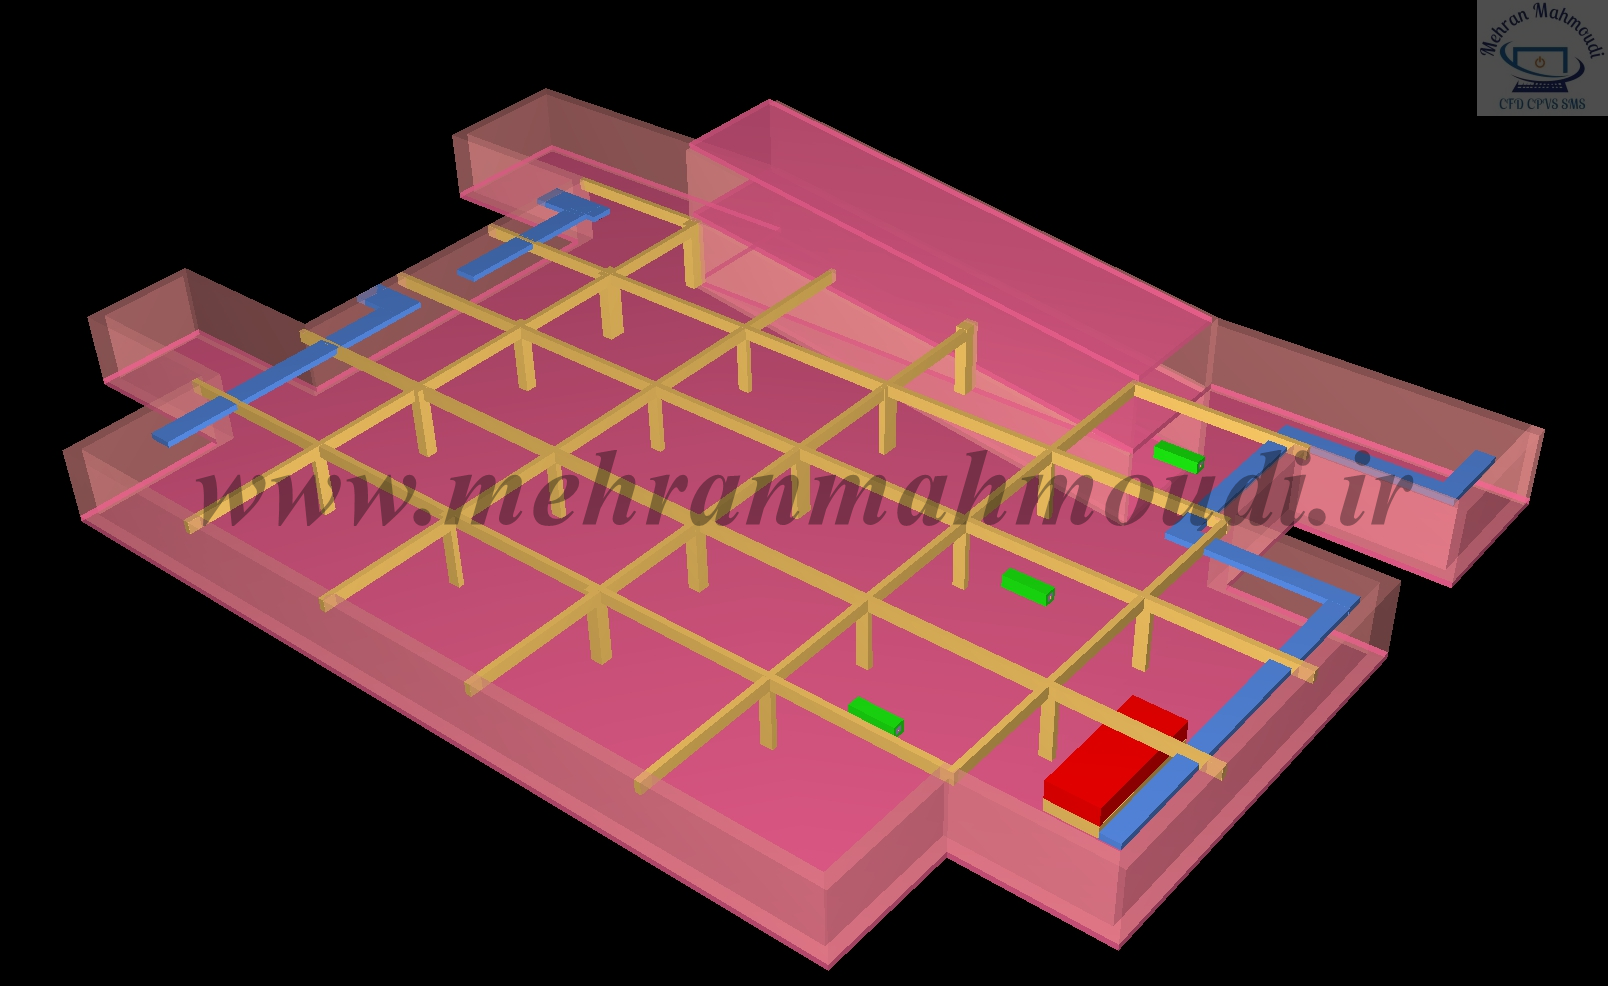 CFD Analysis of parking ventilation system